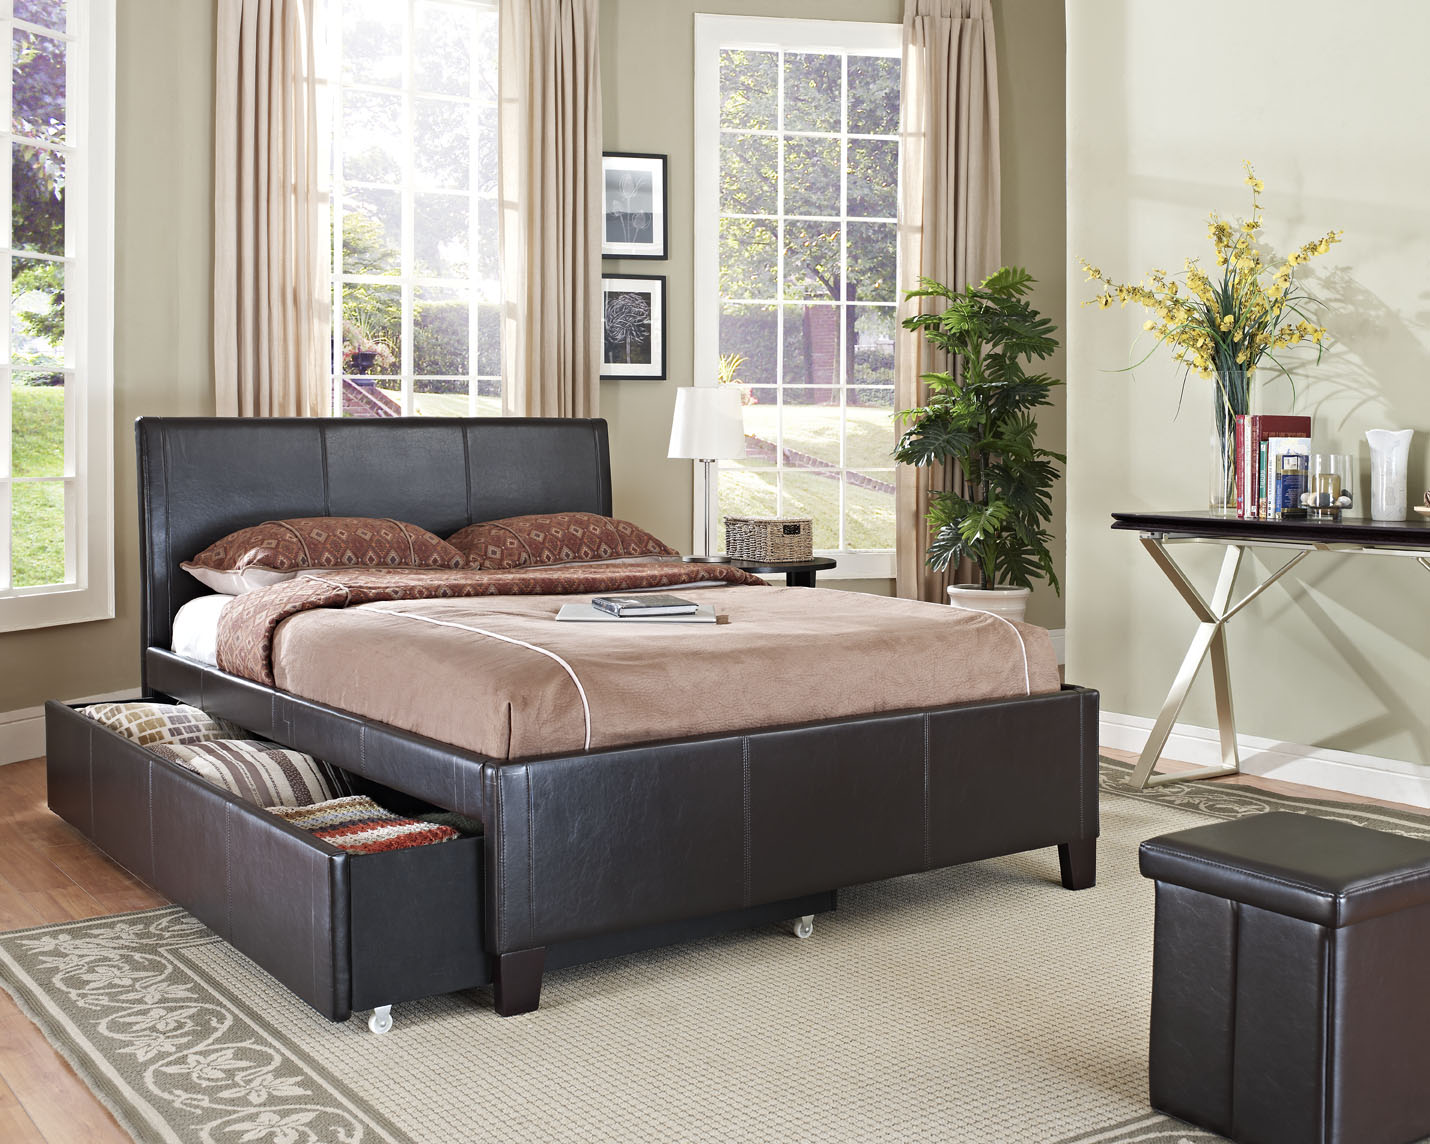 New York Brown Upholstered Trundle Beds by Standard – Lewis